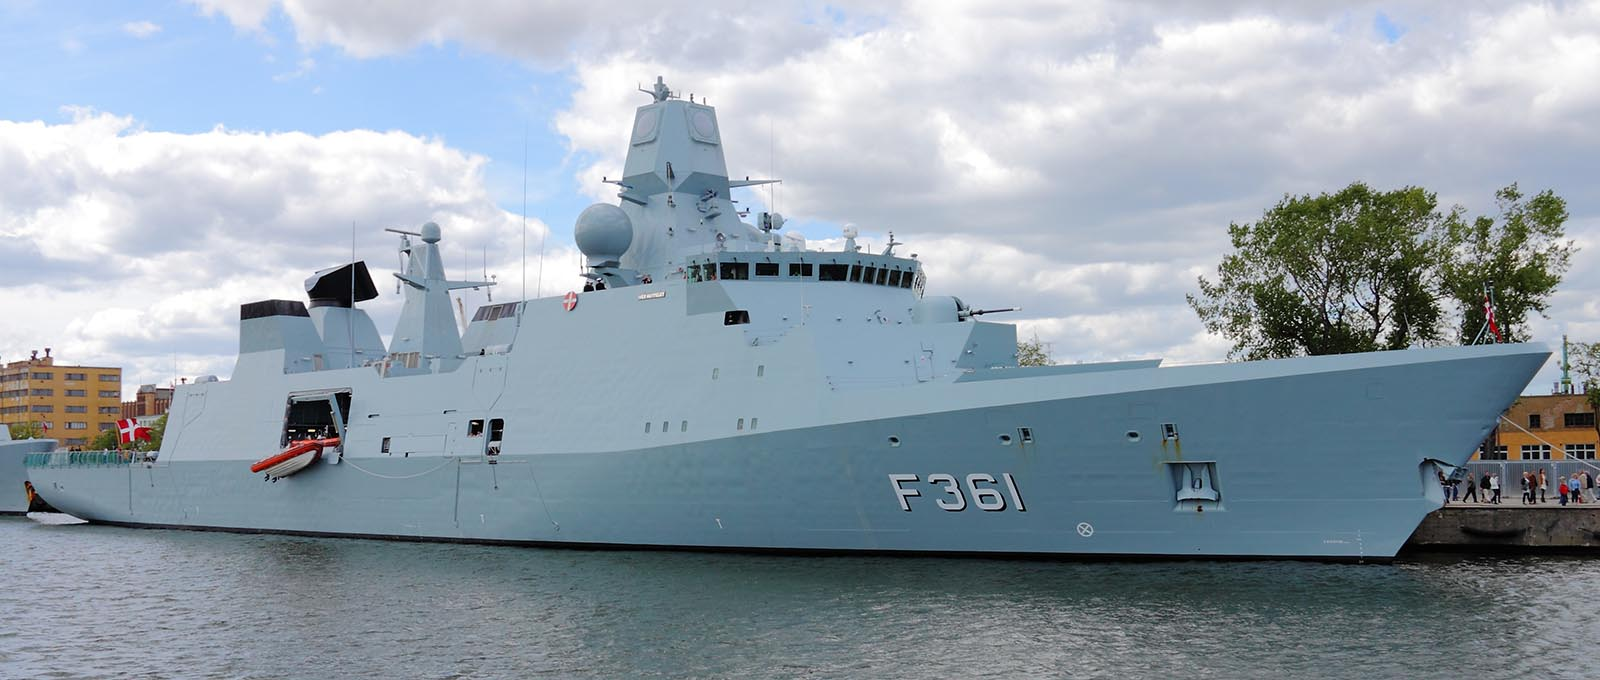 Den danska Huitfeldtklassen har stor mångsidighet och fartygen är intressanta bl a för luftförsvaret av Östersjöinloppen. Foto: Konflikty.pl, Attribution, https://commons.wikimedia.org/w/index.php?curid=19809385.